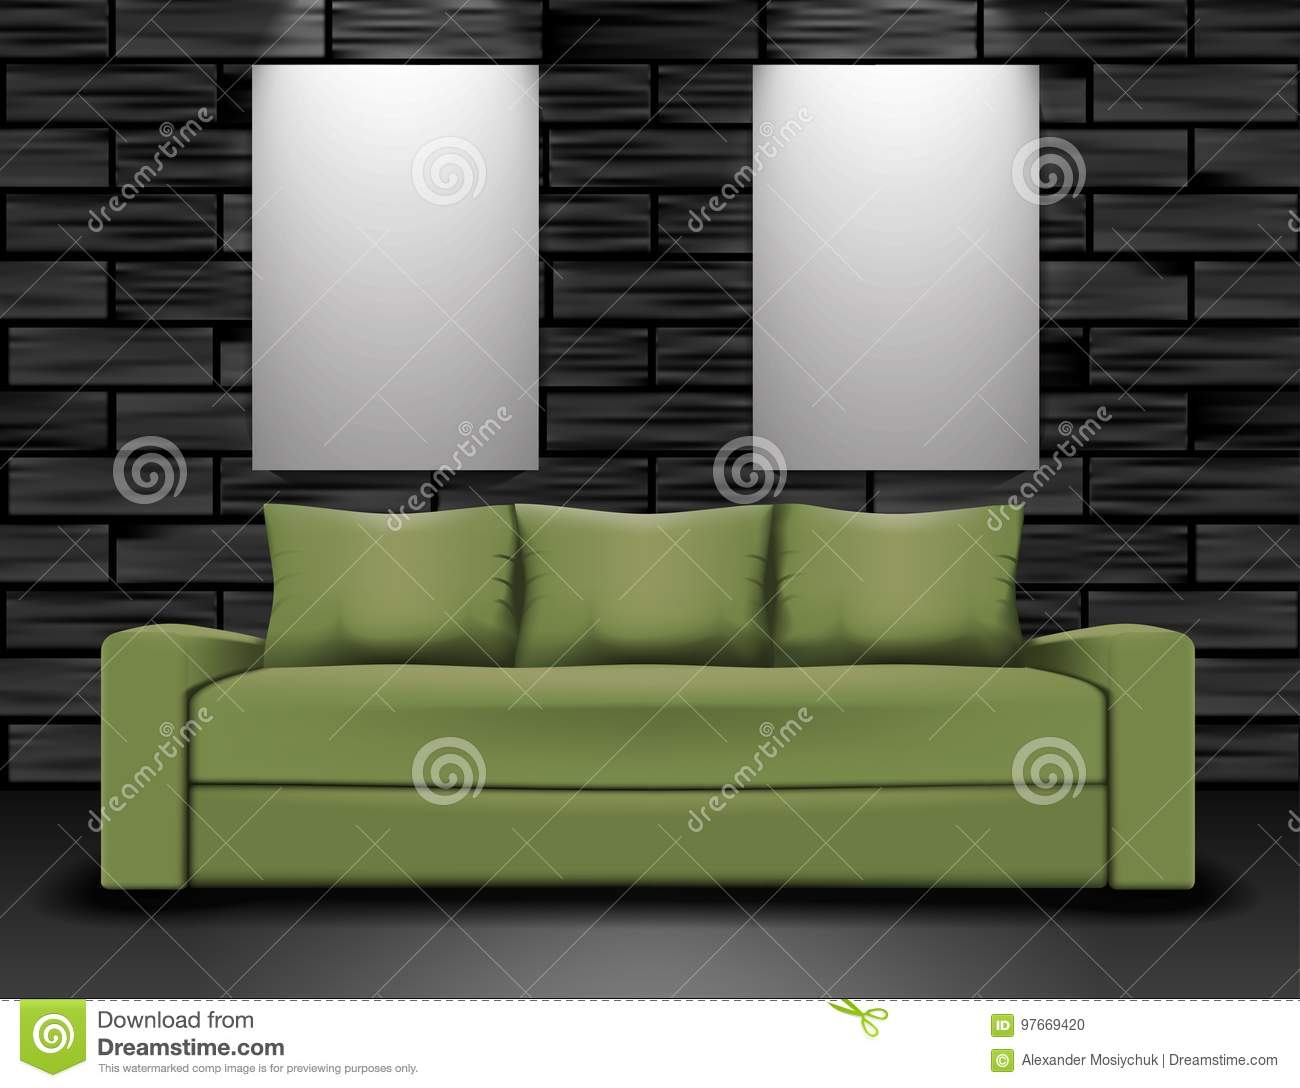 Sofa And Two Posters Mockup Home Interior Illustration Stock Vector